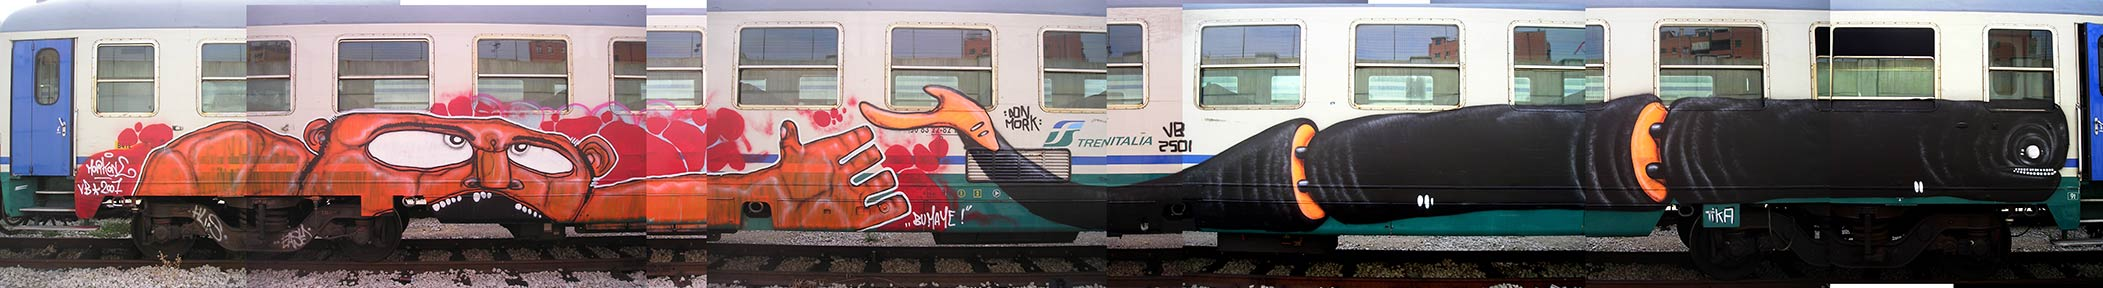 morkone | robotinc2501 | train | whale | milano